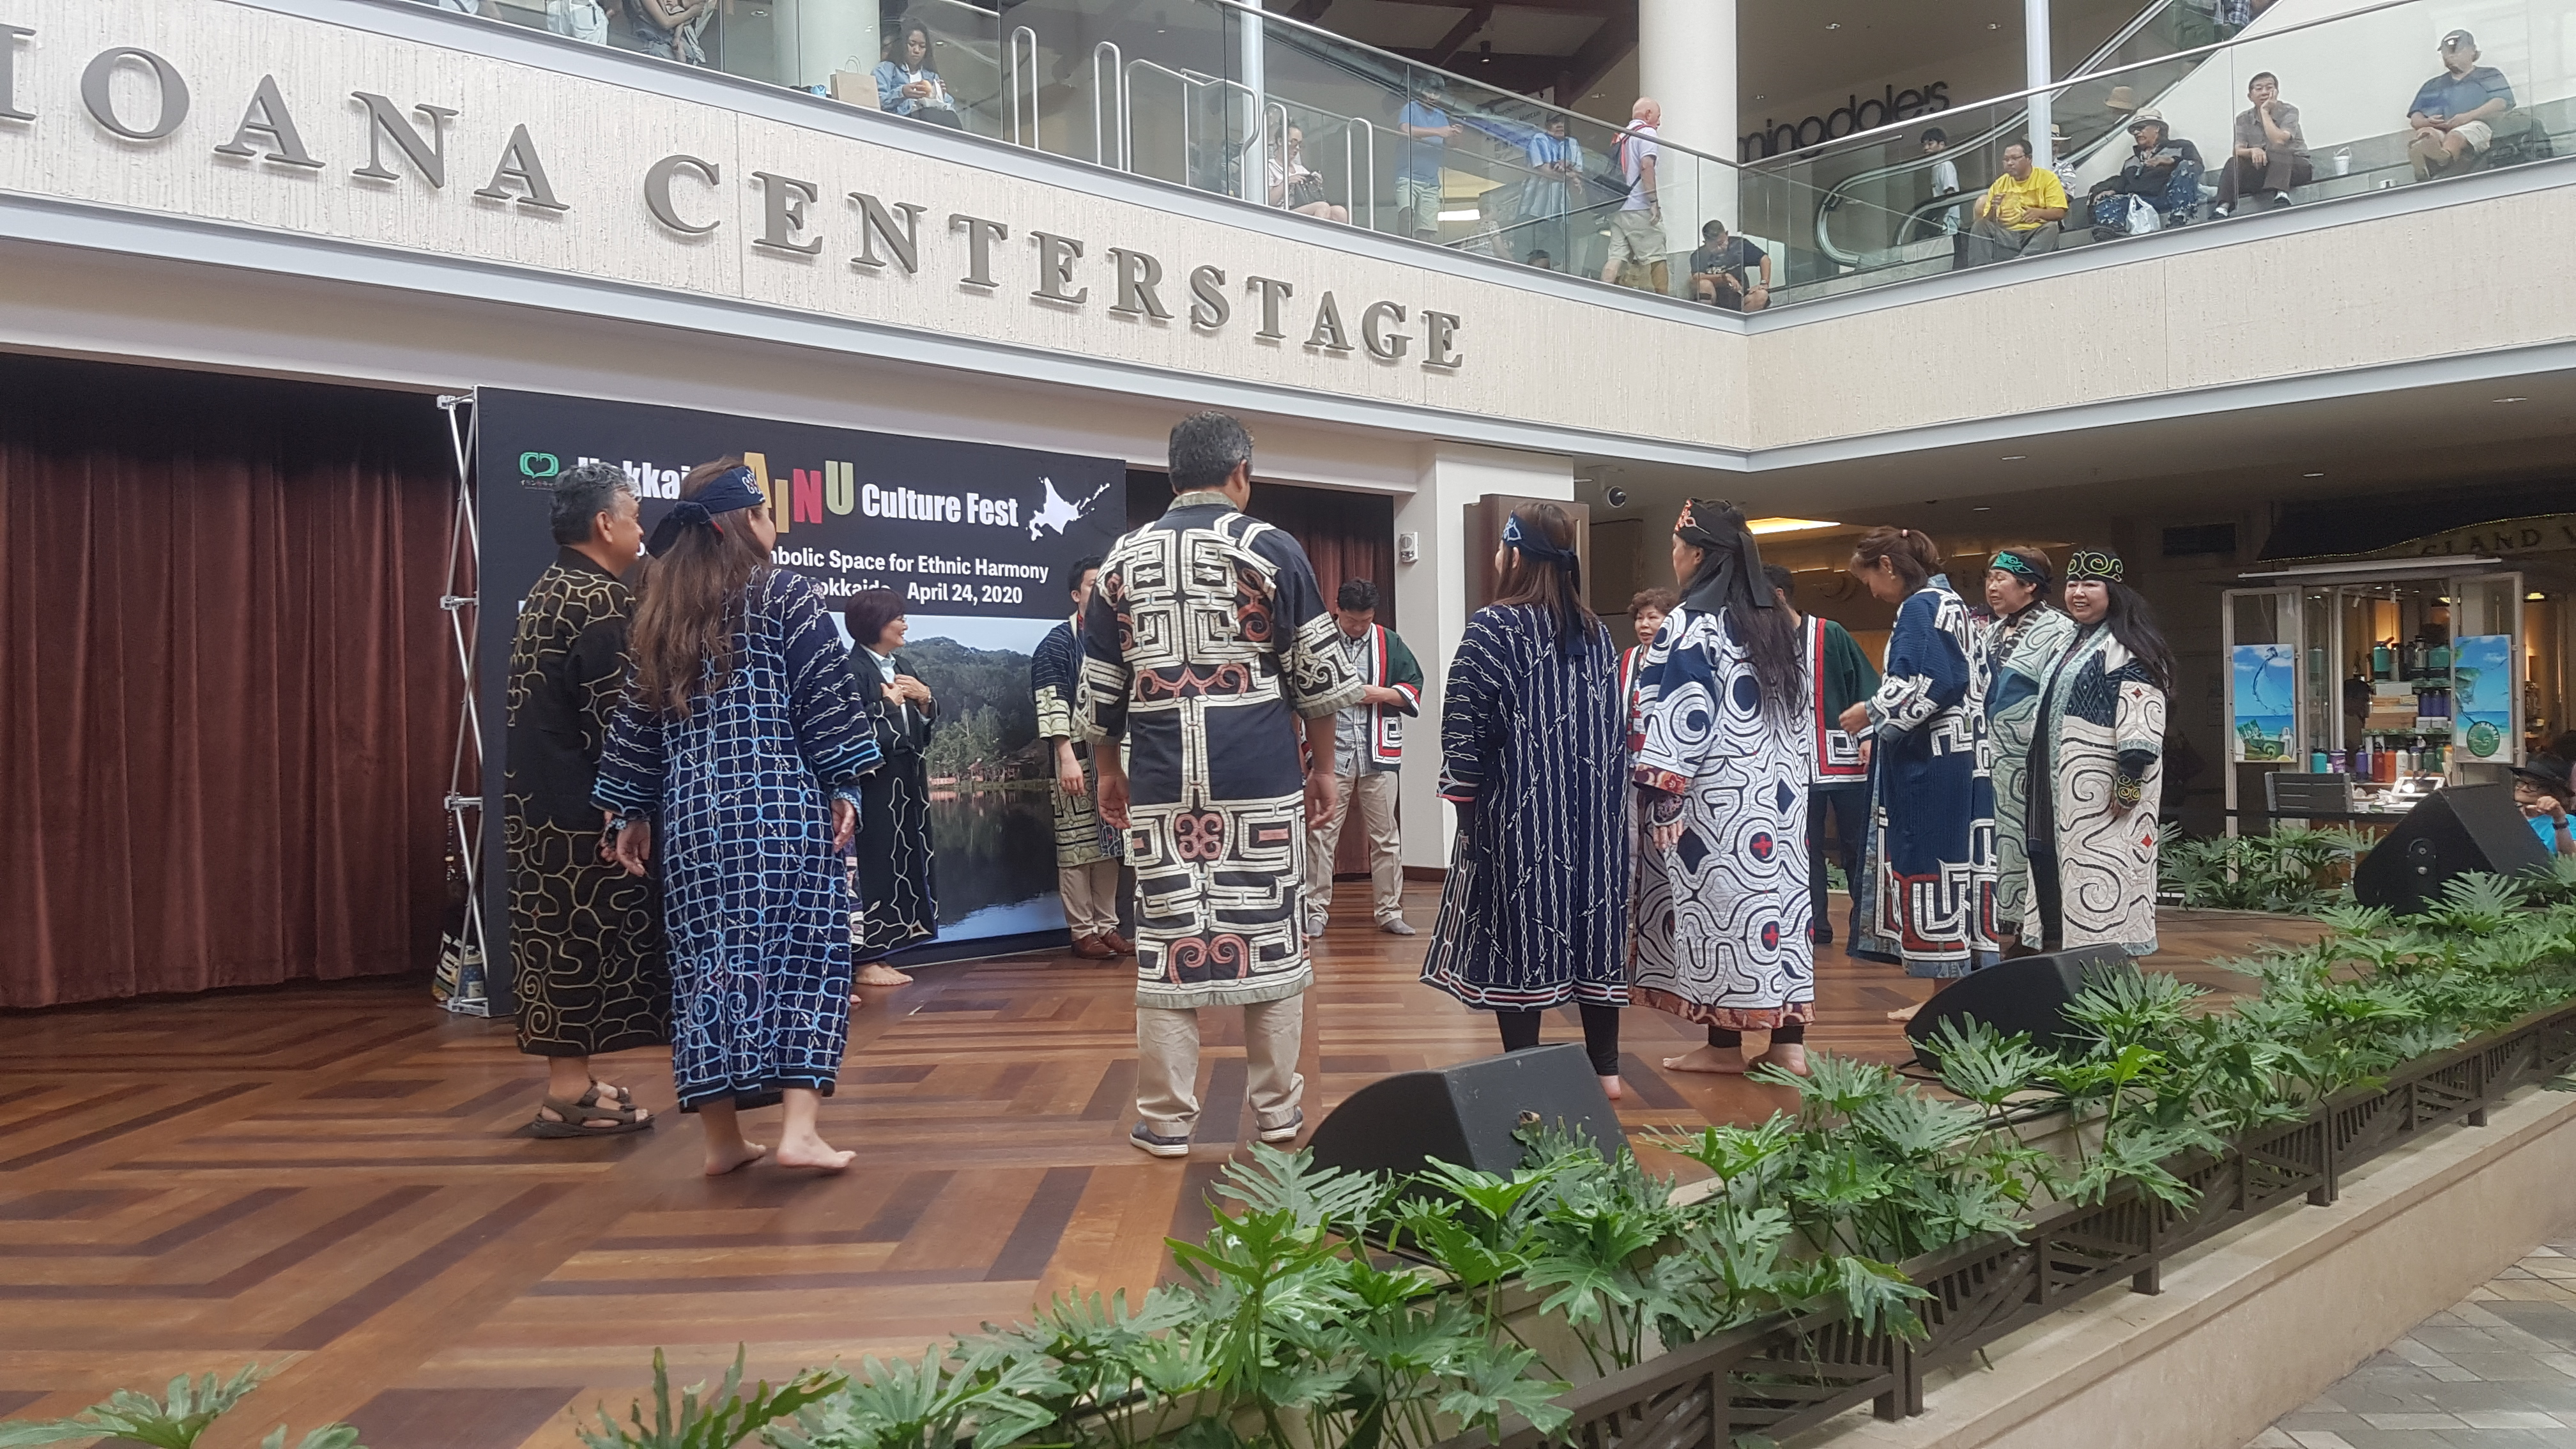 """About thirteen men and women dressed in traditional embroidered dark blue robes form a circle on a wooden stage with the words """"Ala Moana Centerstage"""" on the second floor overhang. The words are cut off and only """"centerstage"""" can be seen. Some audience members are looking at the performance from the second floor of the mall."""